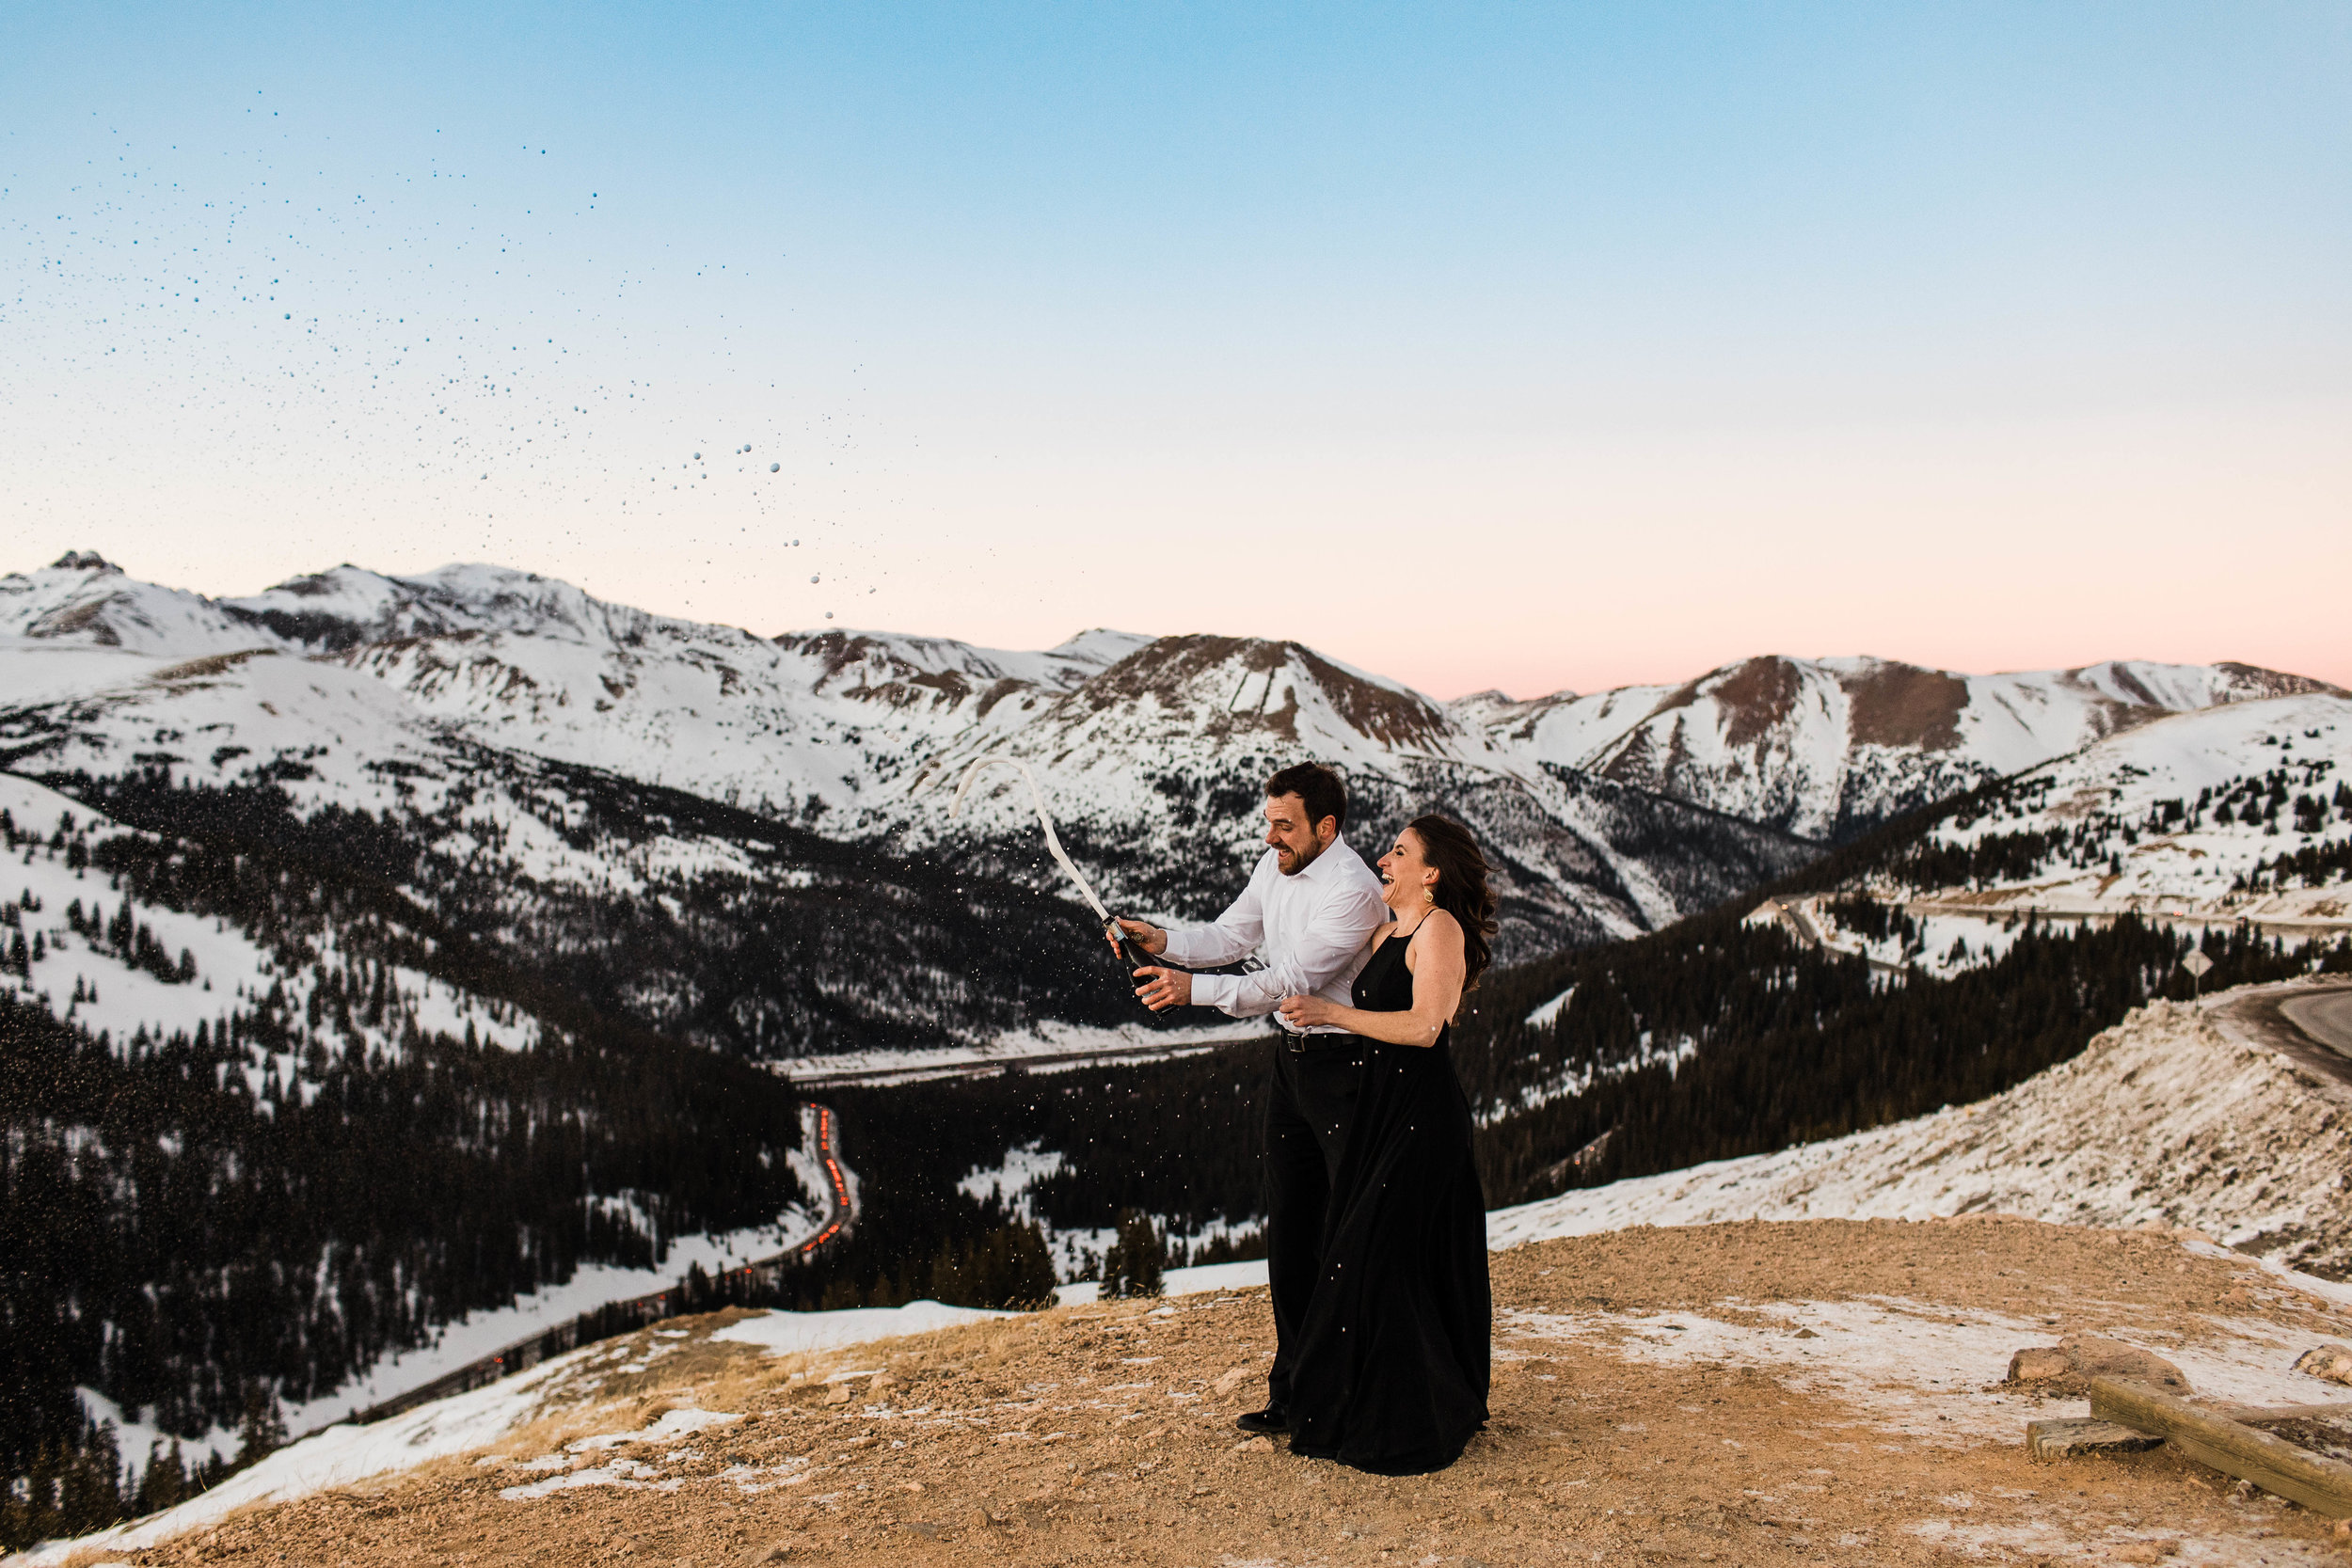 Popping champagne on top of a mountain | Colorado Elopement Photographer